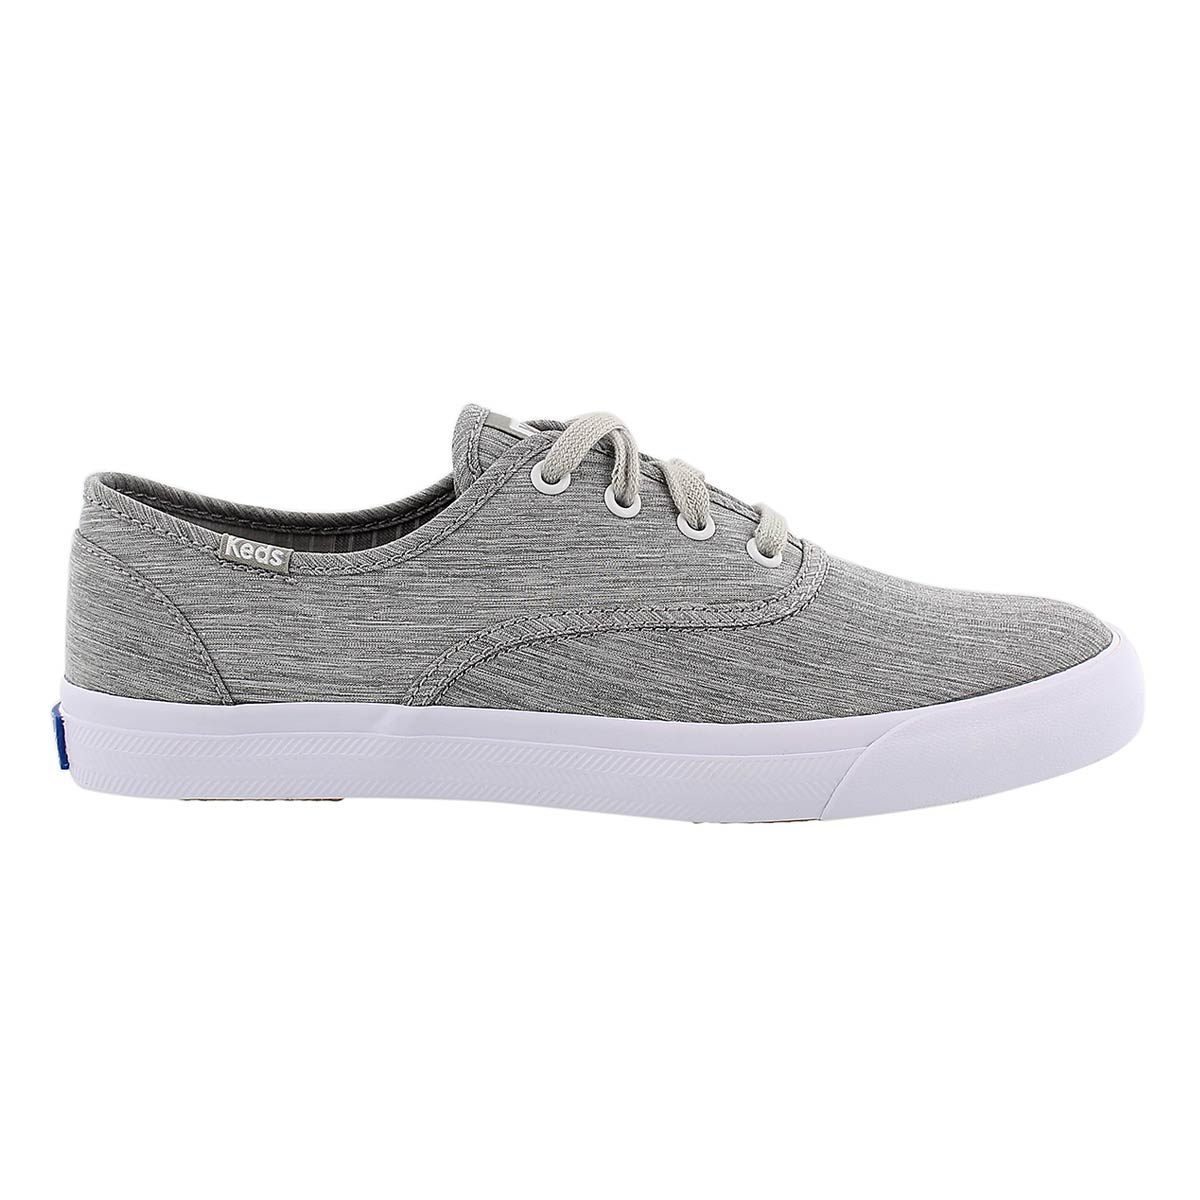 Lds Triumph grey fashion sneaker